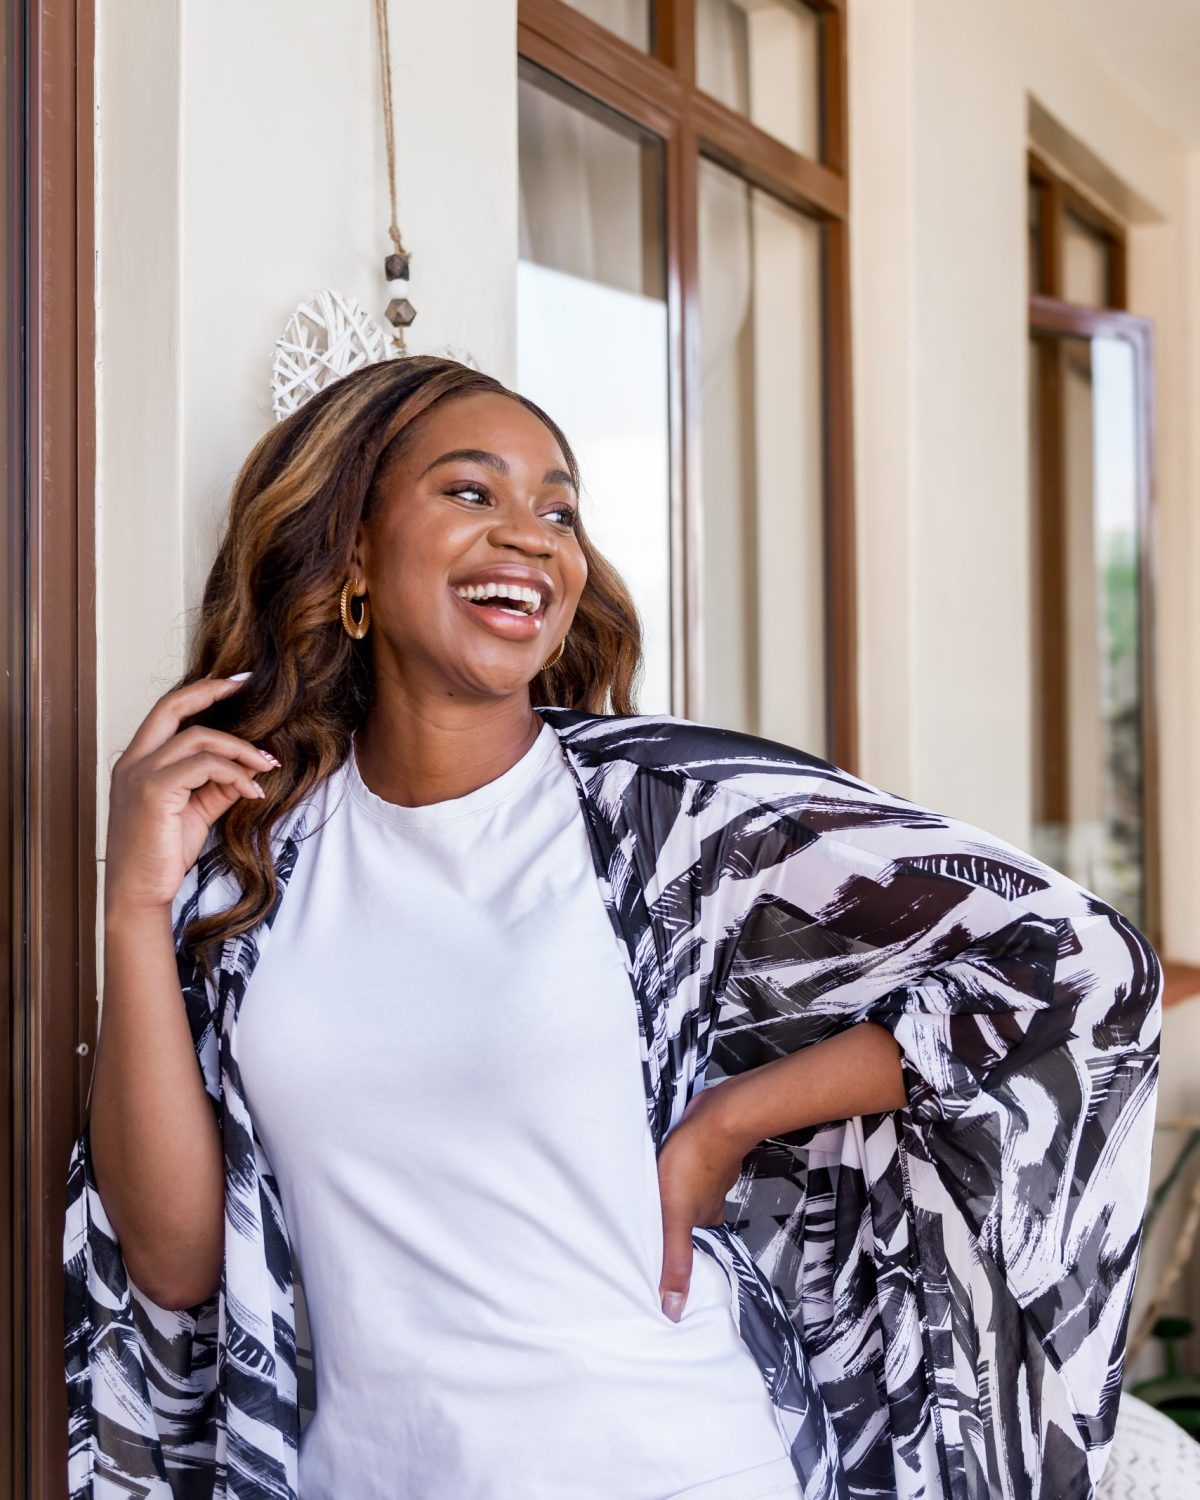 Ijeoma Kola laughing in white outfit and black and white kimono | Black owned brands